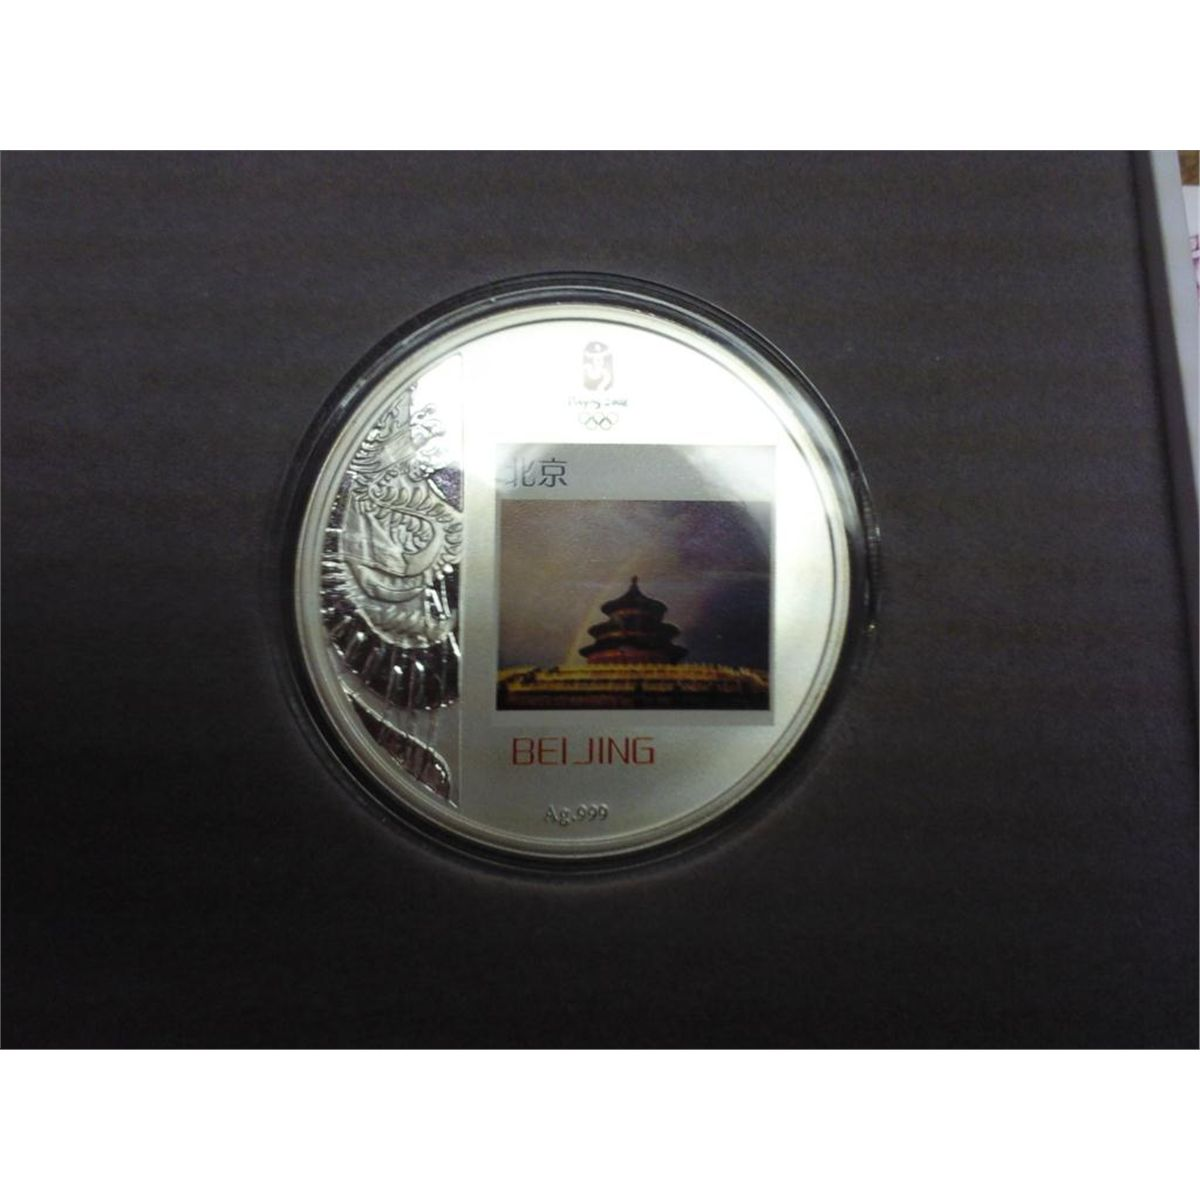 Sports Memorabilia Mint Commemorative Medallion Of Torch Relay Beijing 2008 Olympic Games Beijing 2008